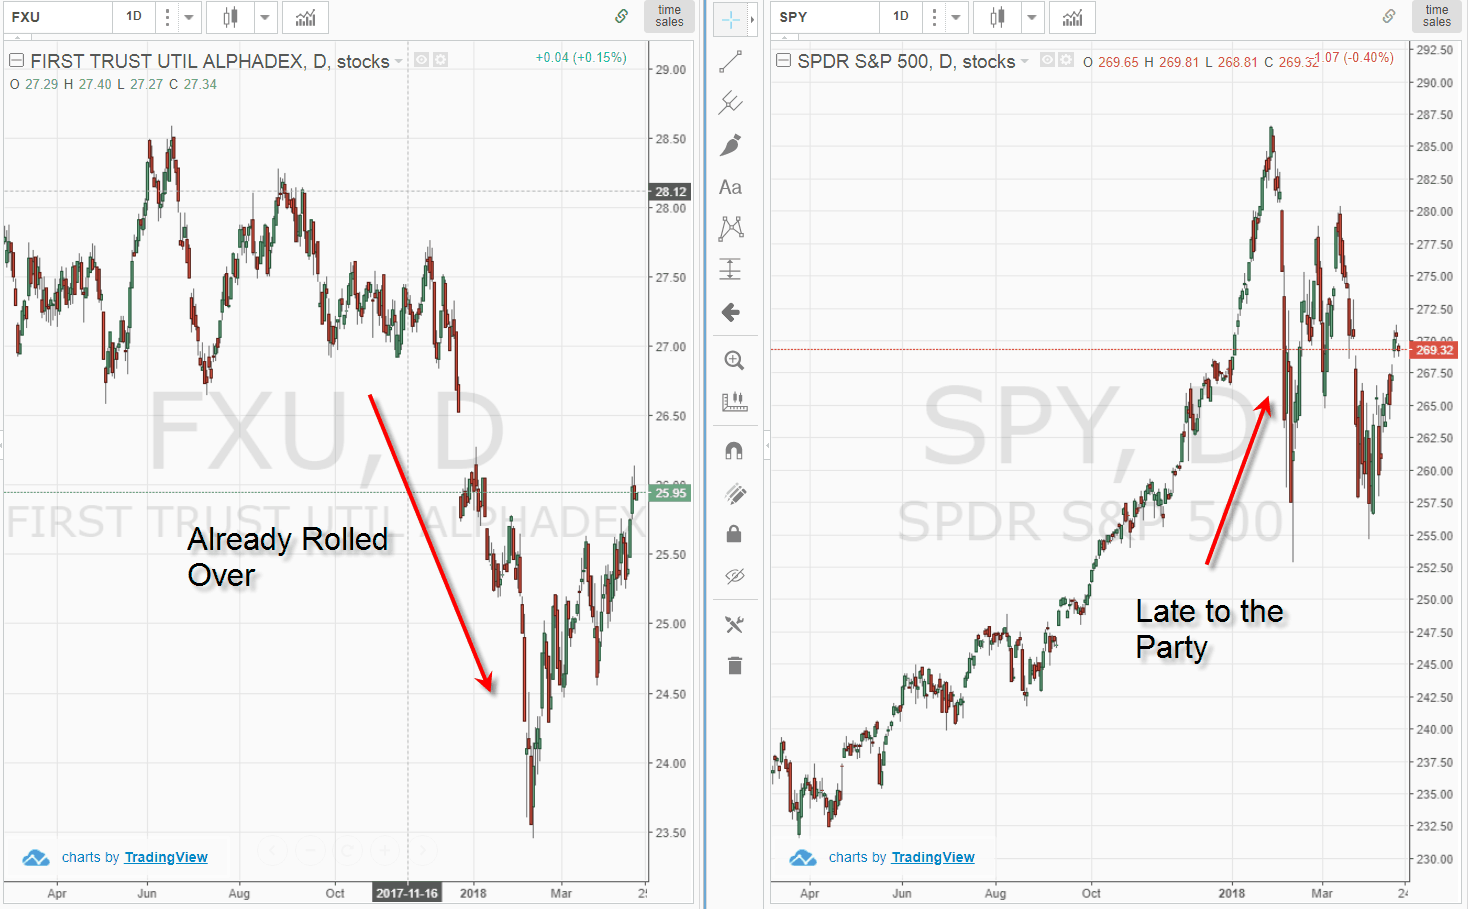 Divergence in Broad Markets